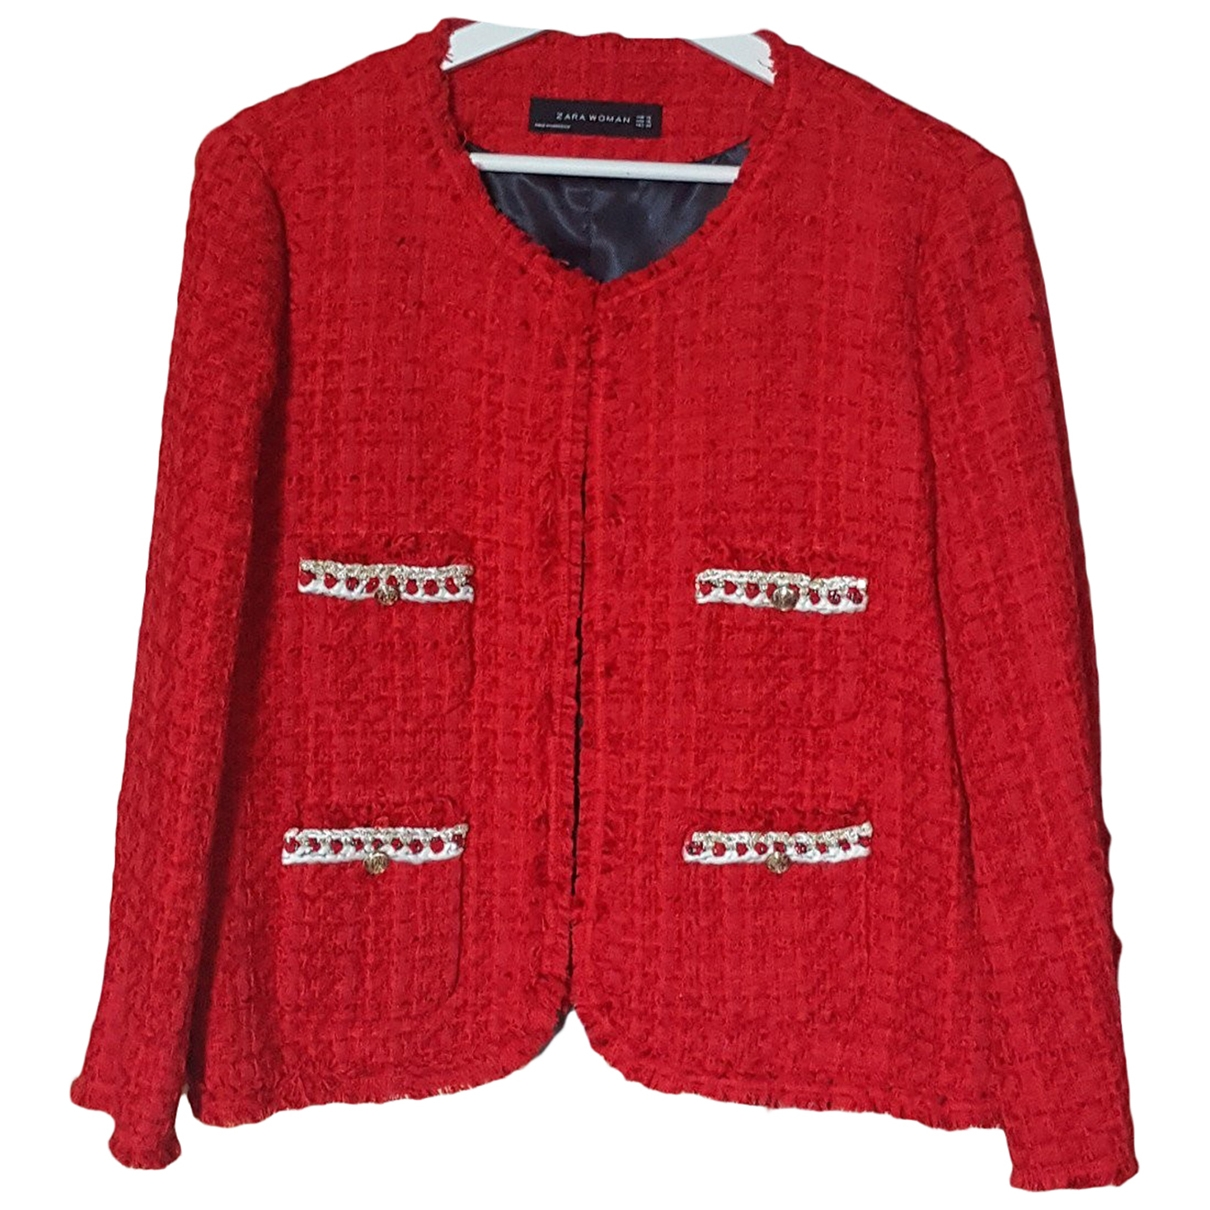 Zara \N Red Tweed jacket for Women XL International